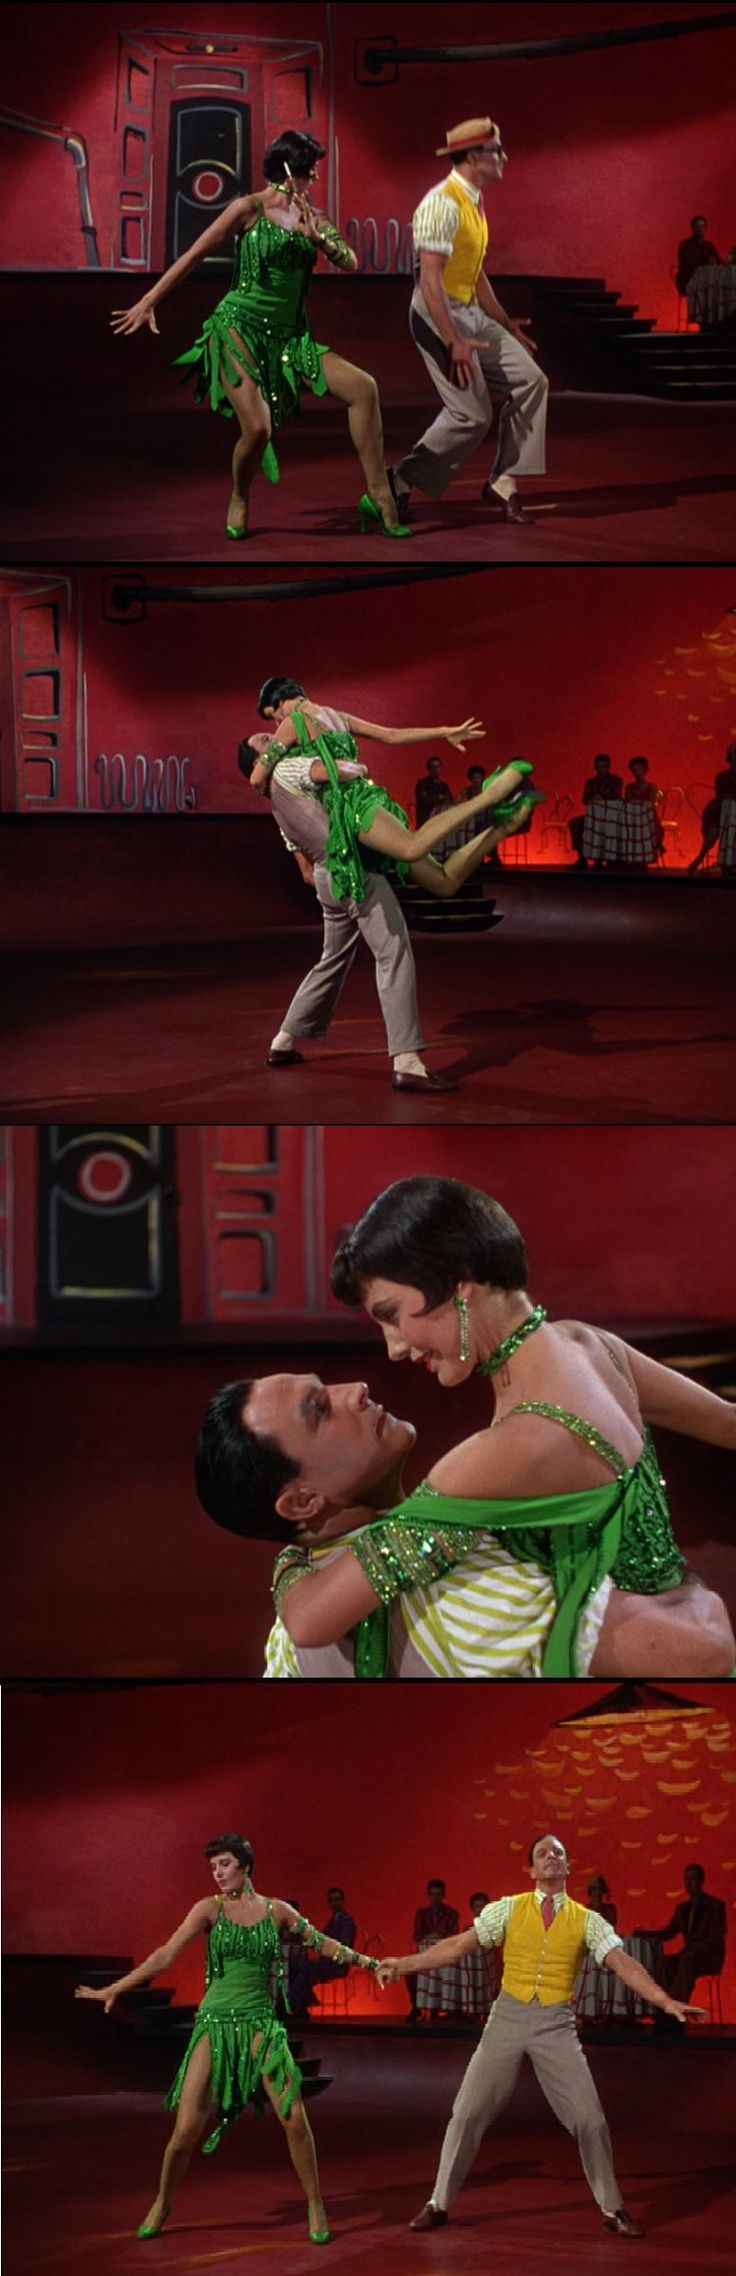 Cyd Charisse and Gene Kelly in a delicious and sensuous ballet in Singin' in the Rain 1953